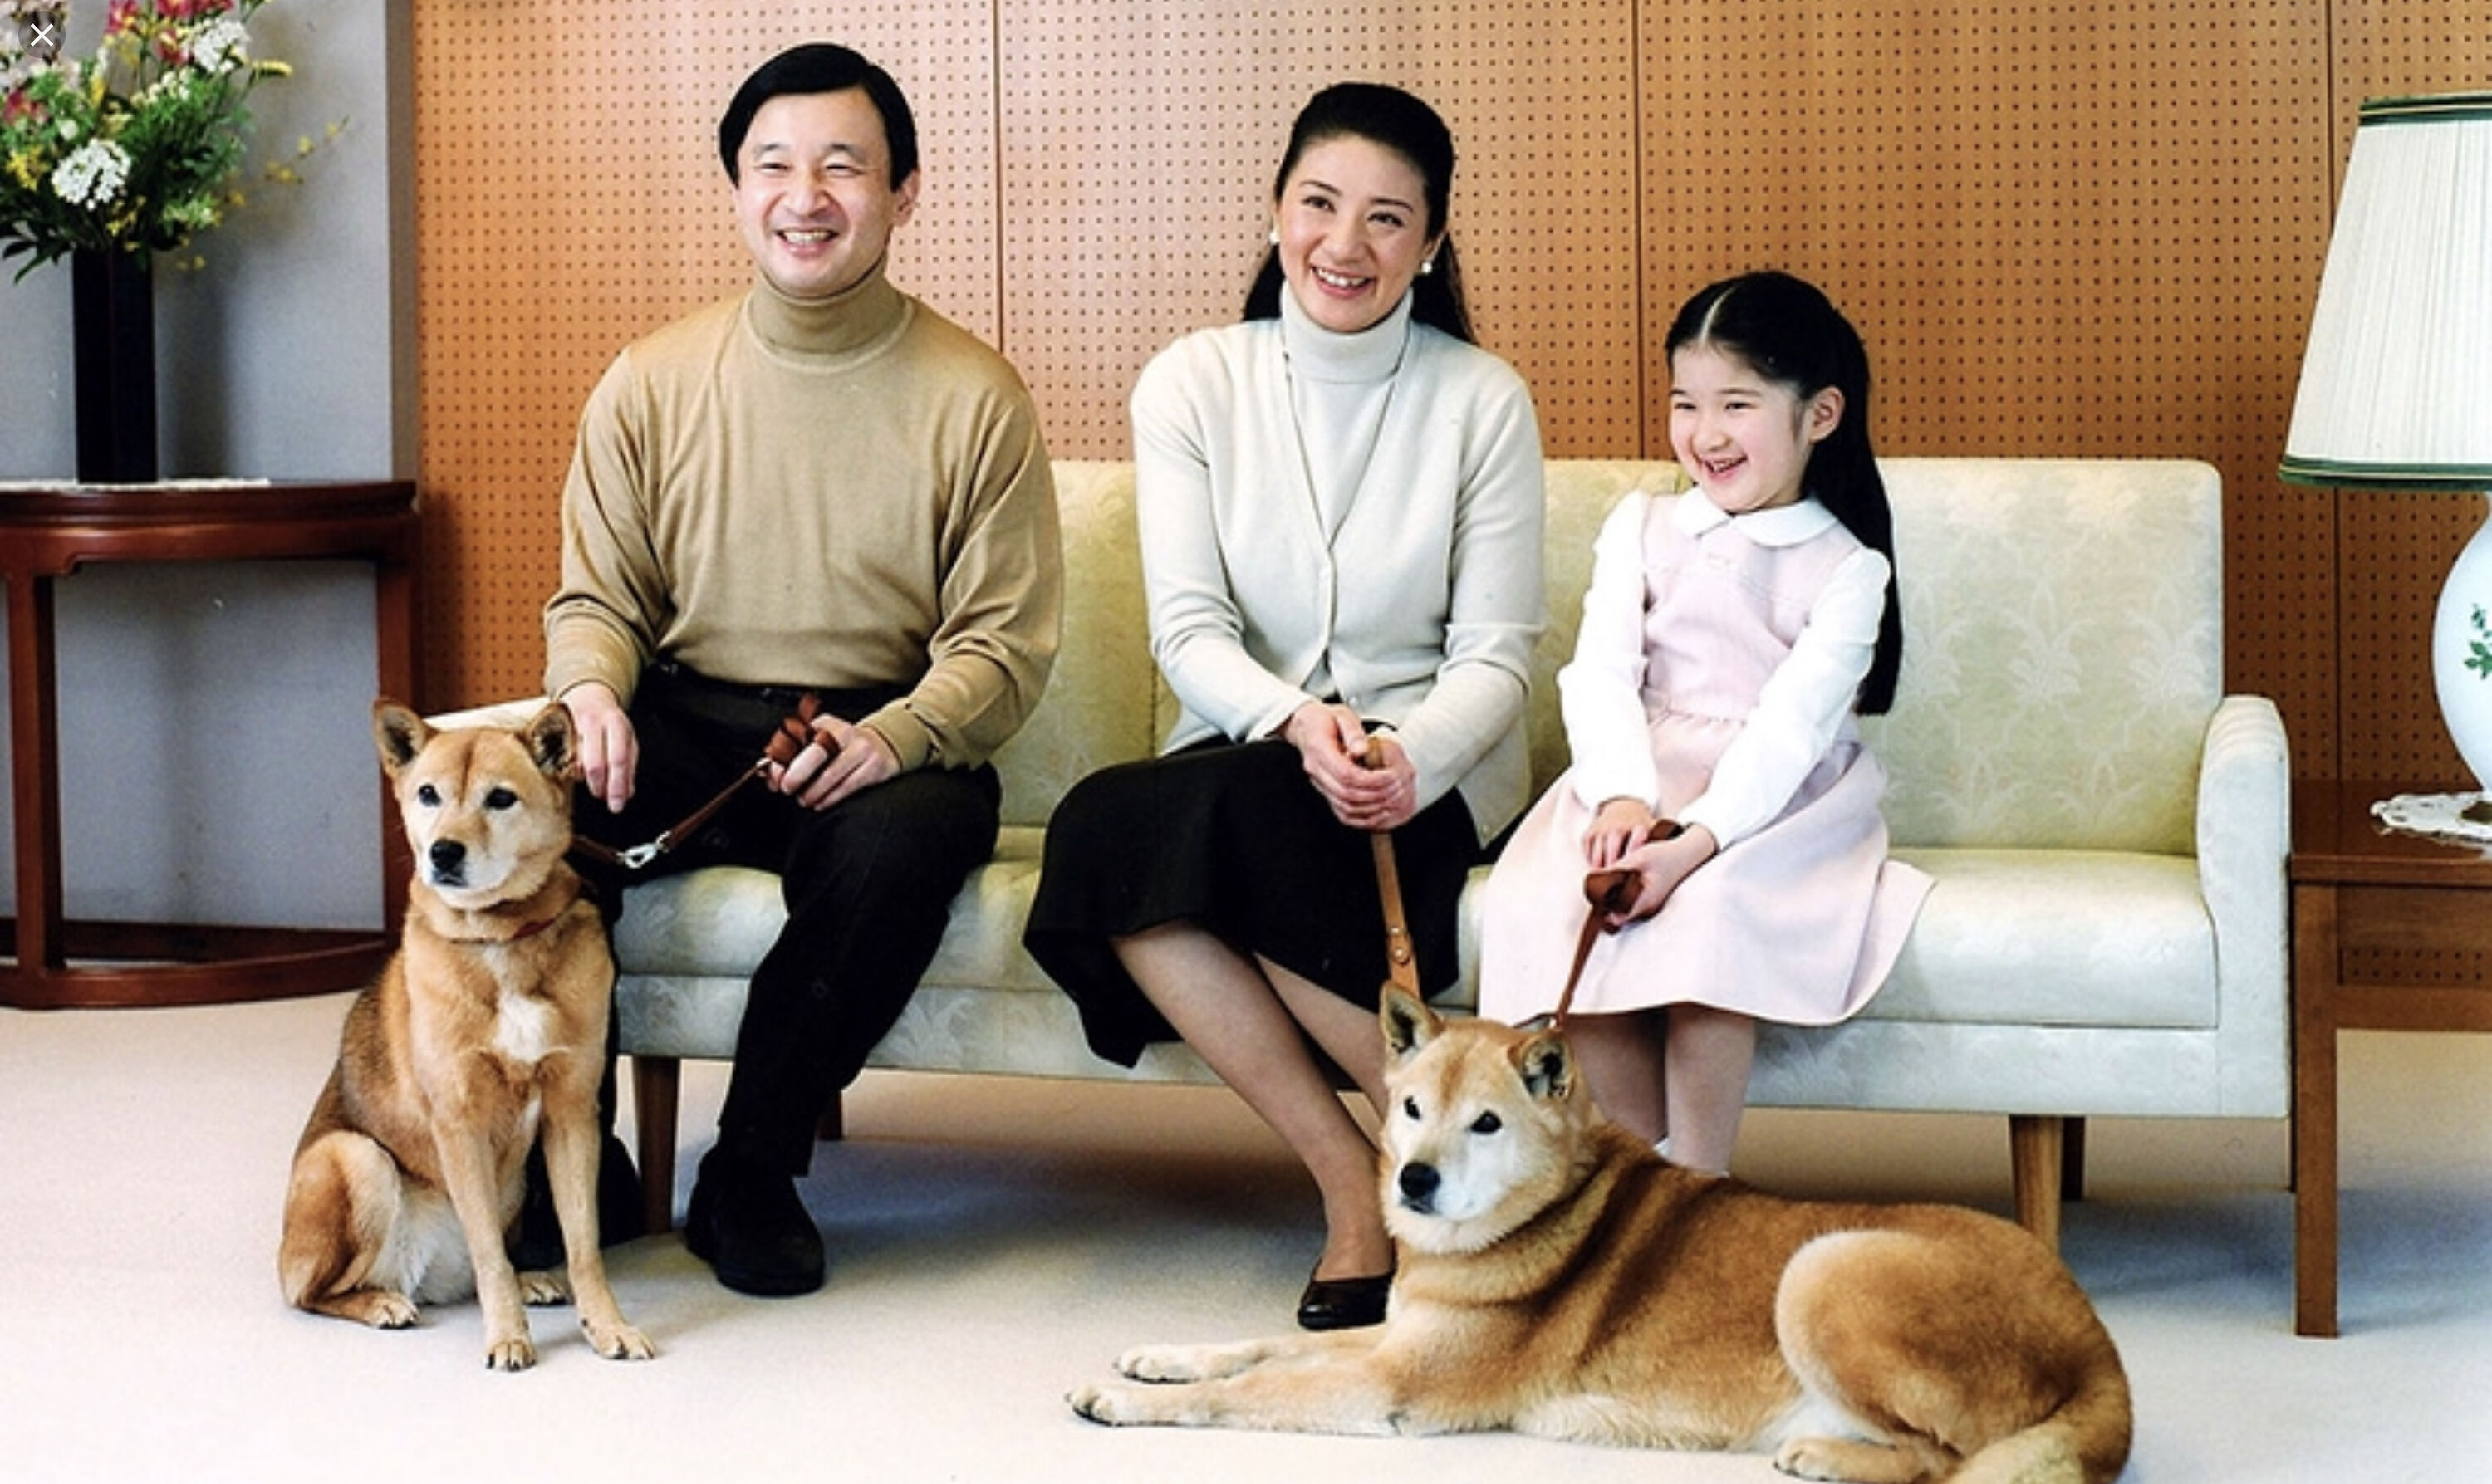 The new emperor, Naruhito, and his family.